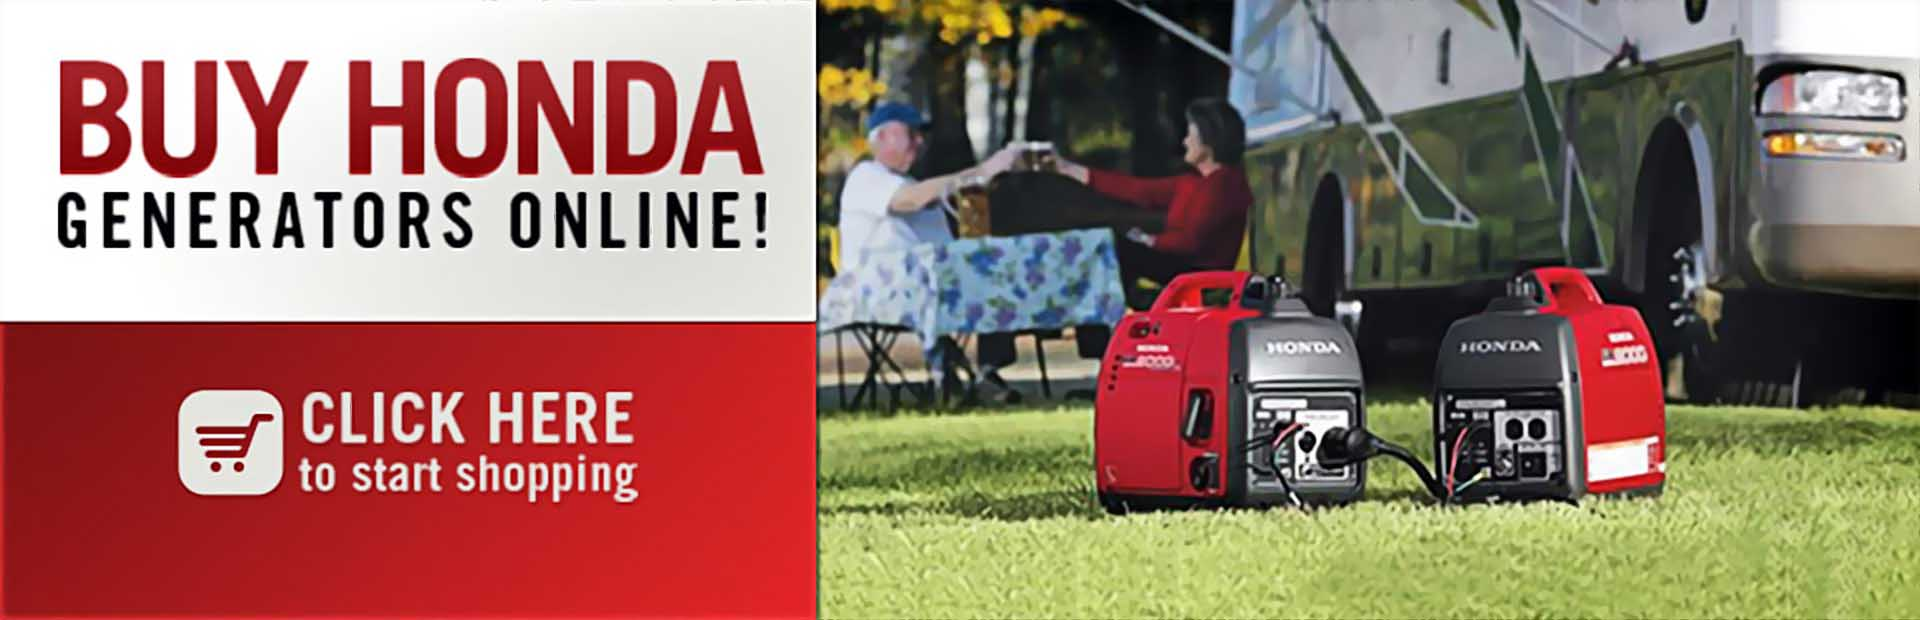 Buy Honda generators online! Click here to start shopping.